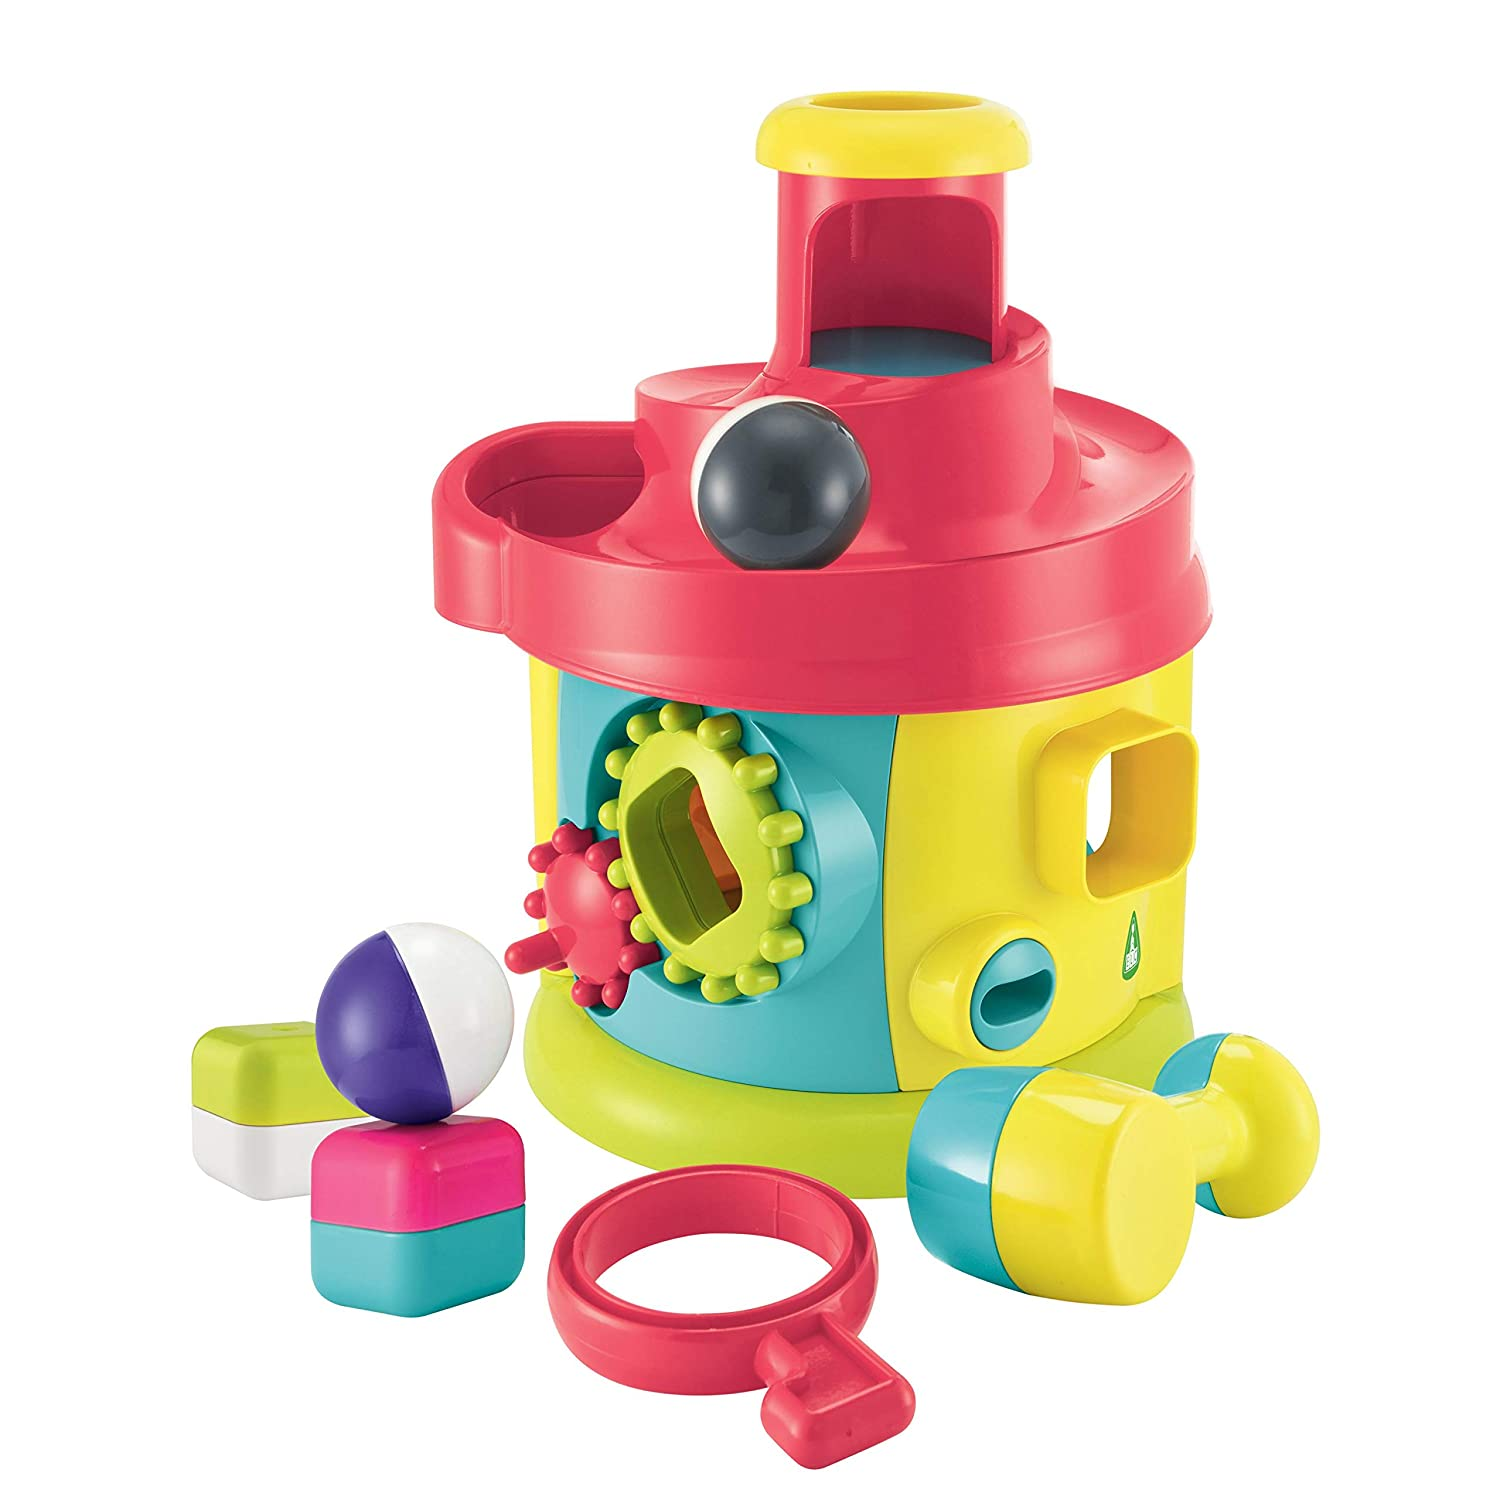 Early Learning Centre 148438 Twist And Turn House, Multicolore